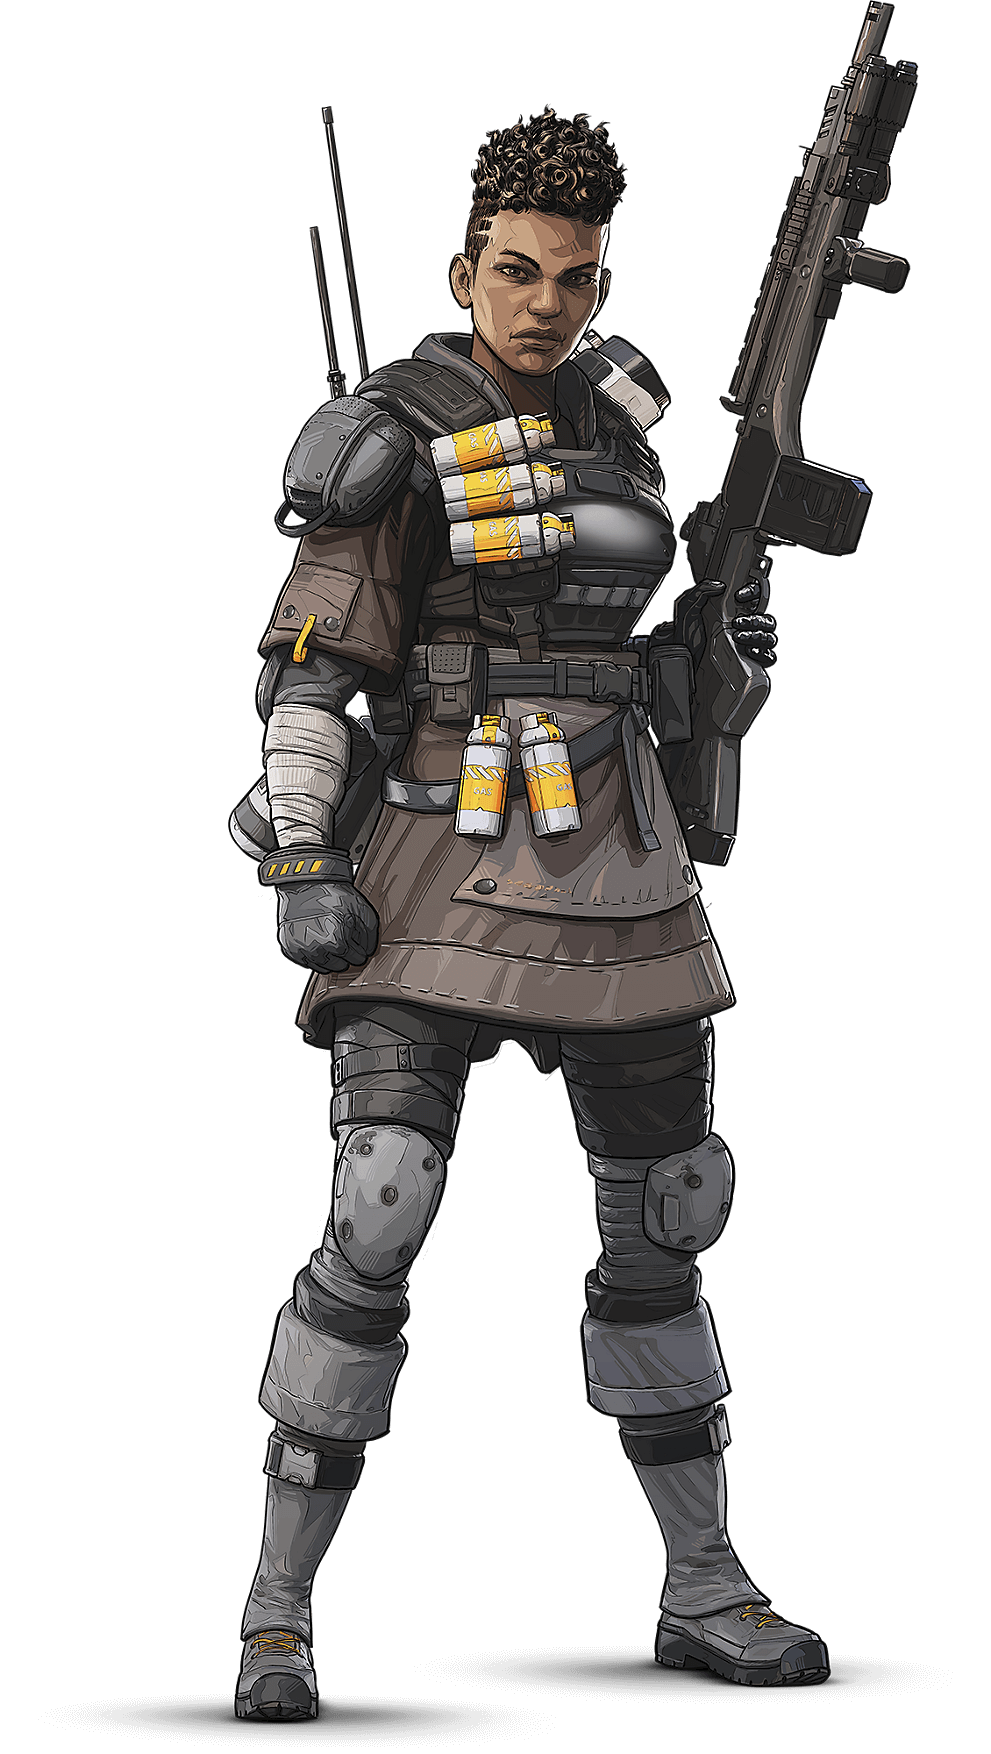 APEX Legends - Bangalore Arte del personaje